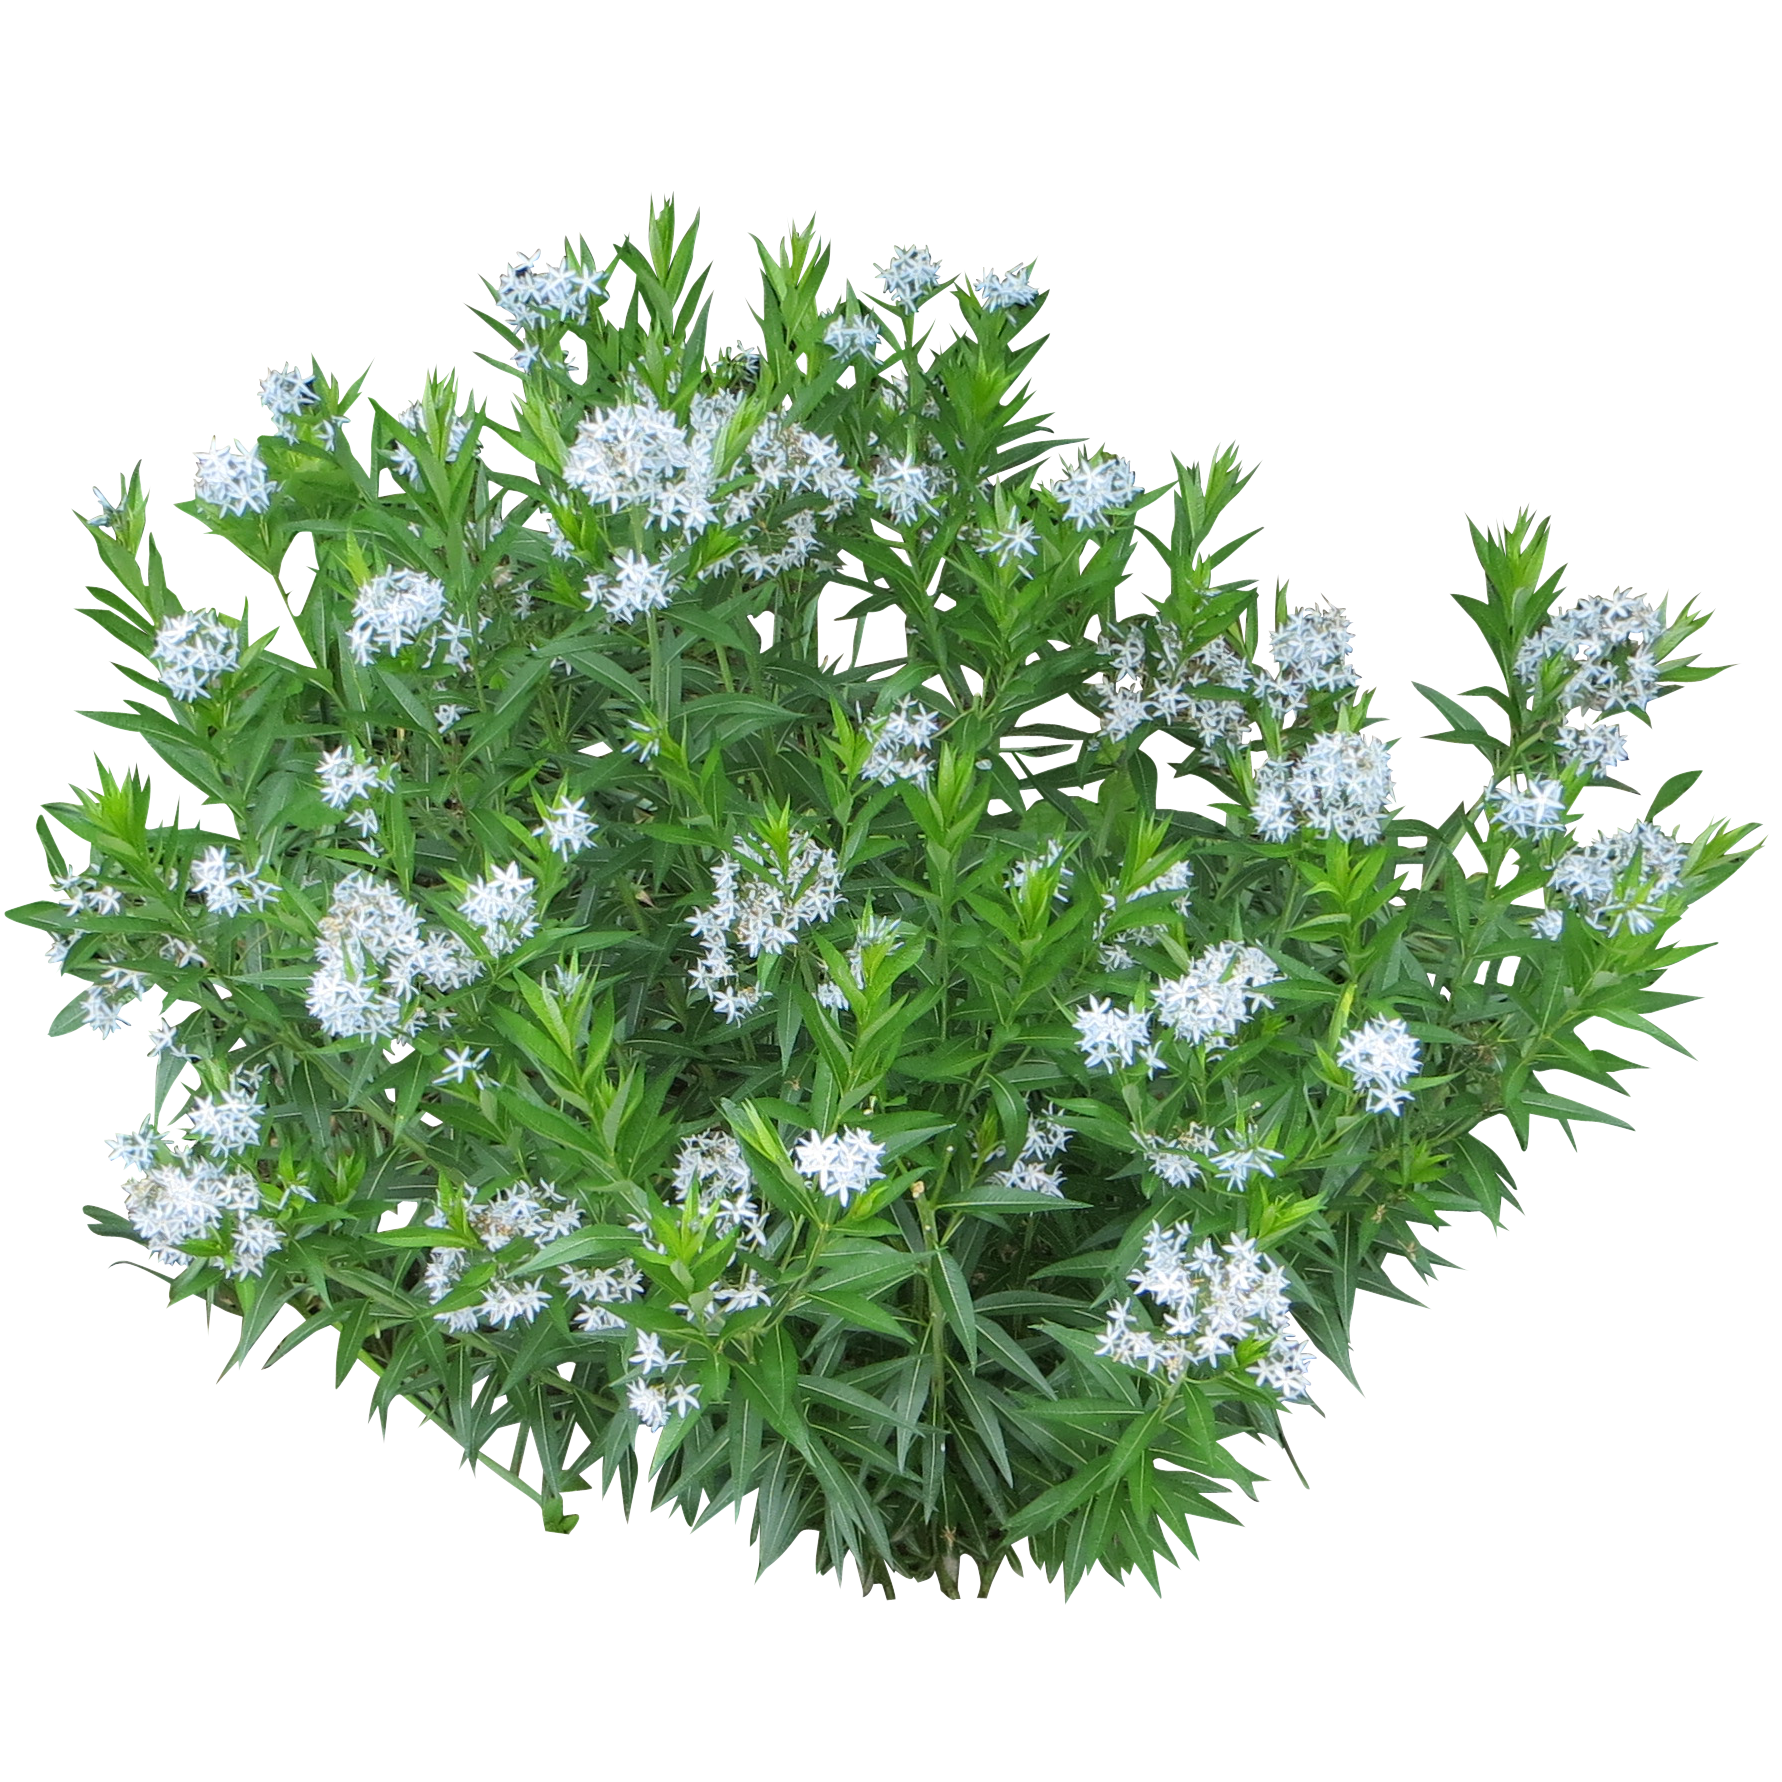 Top view plants 02 2d plant entourage for architecture - Spirea Shrub Png 1782 1782